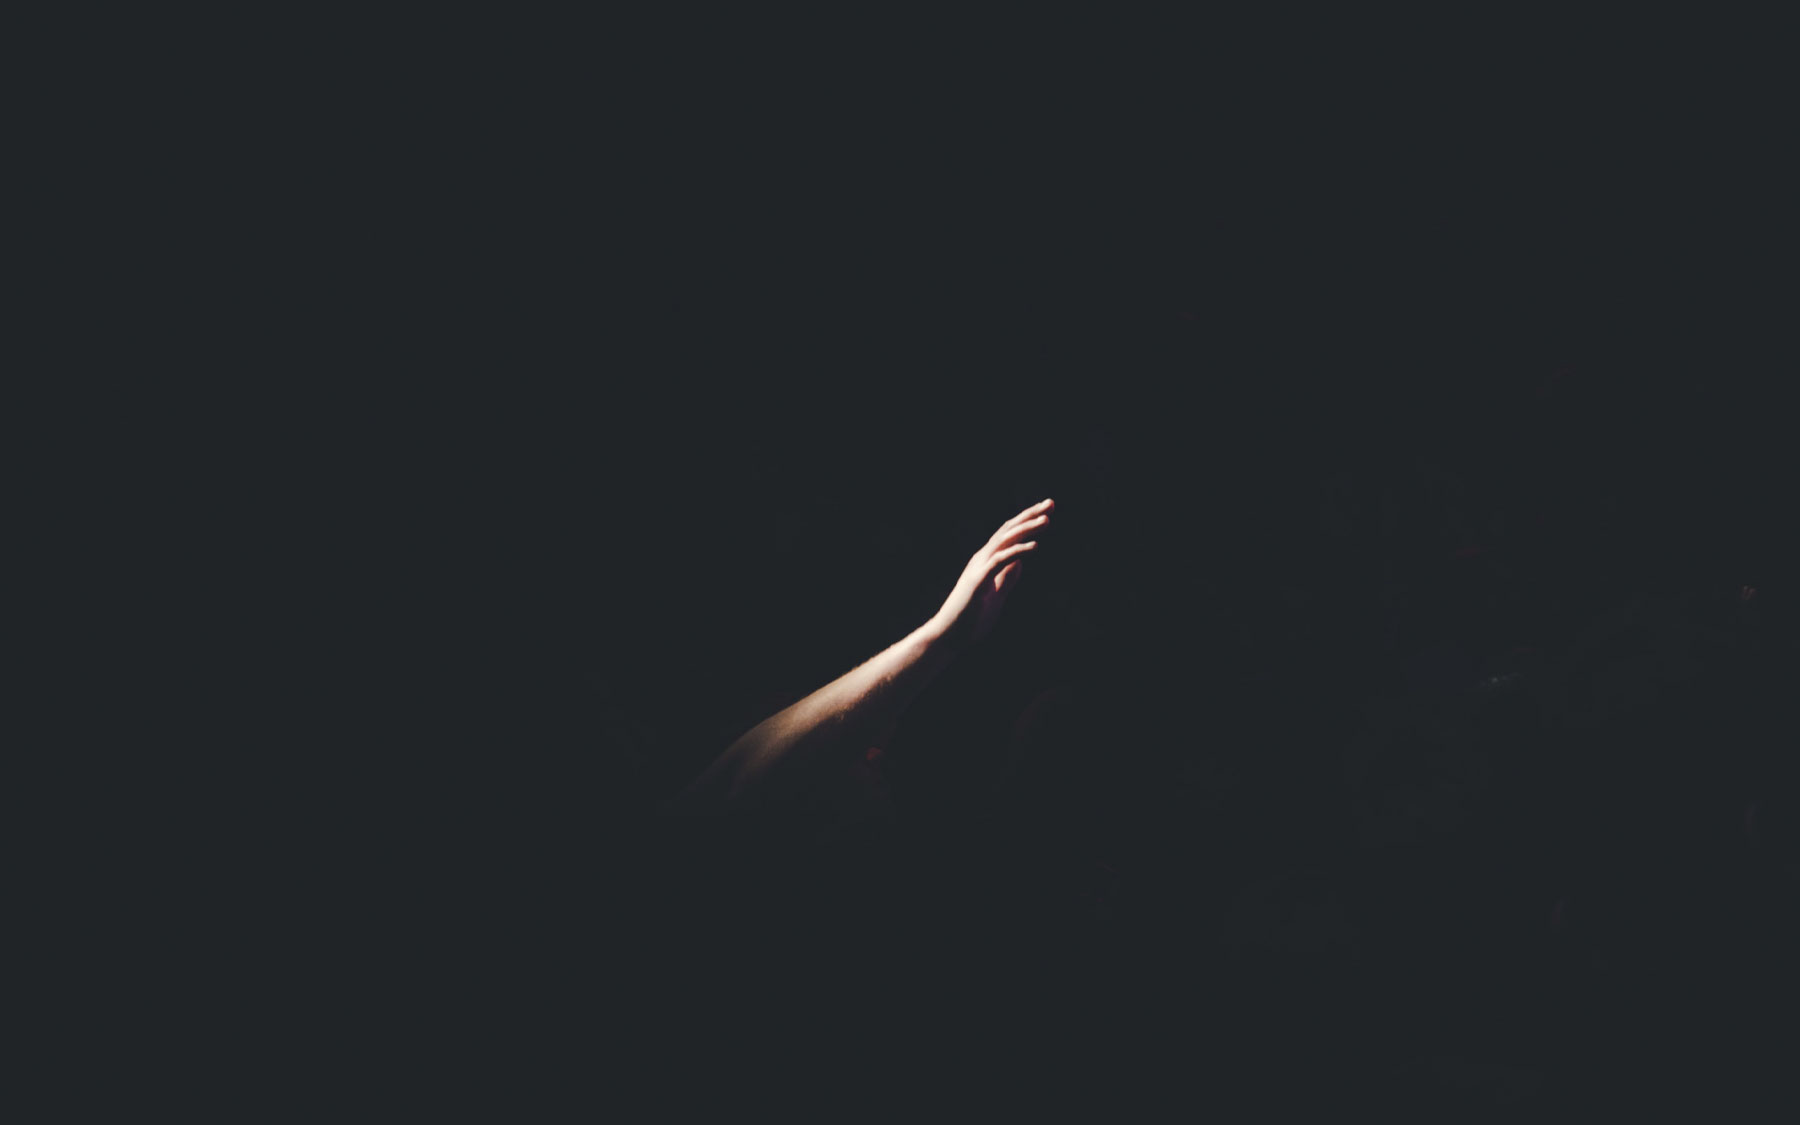 A hand reaching out in the darkness